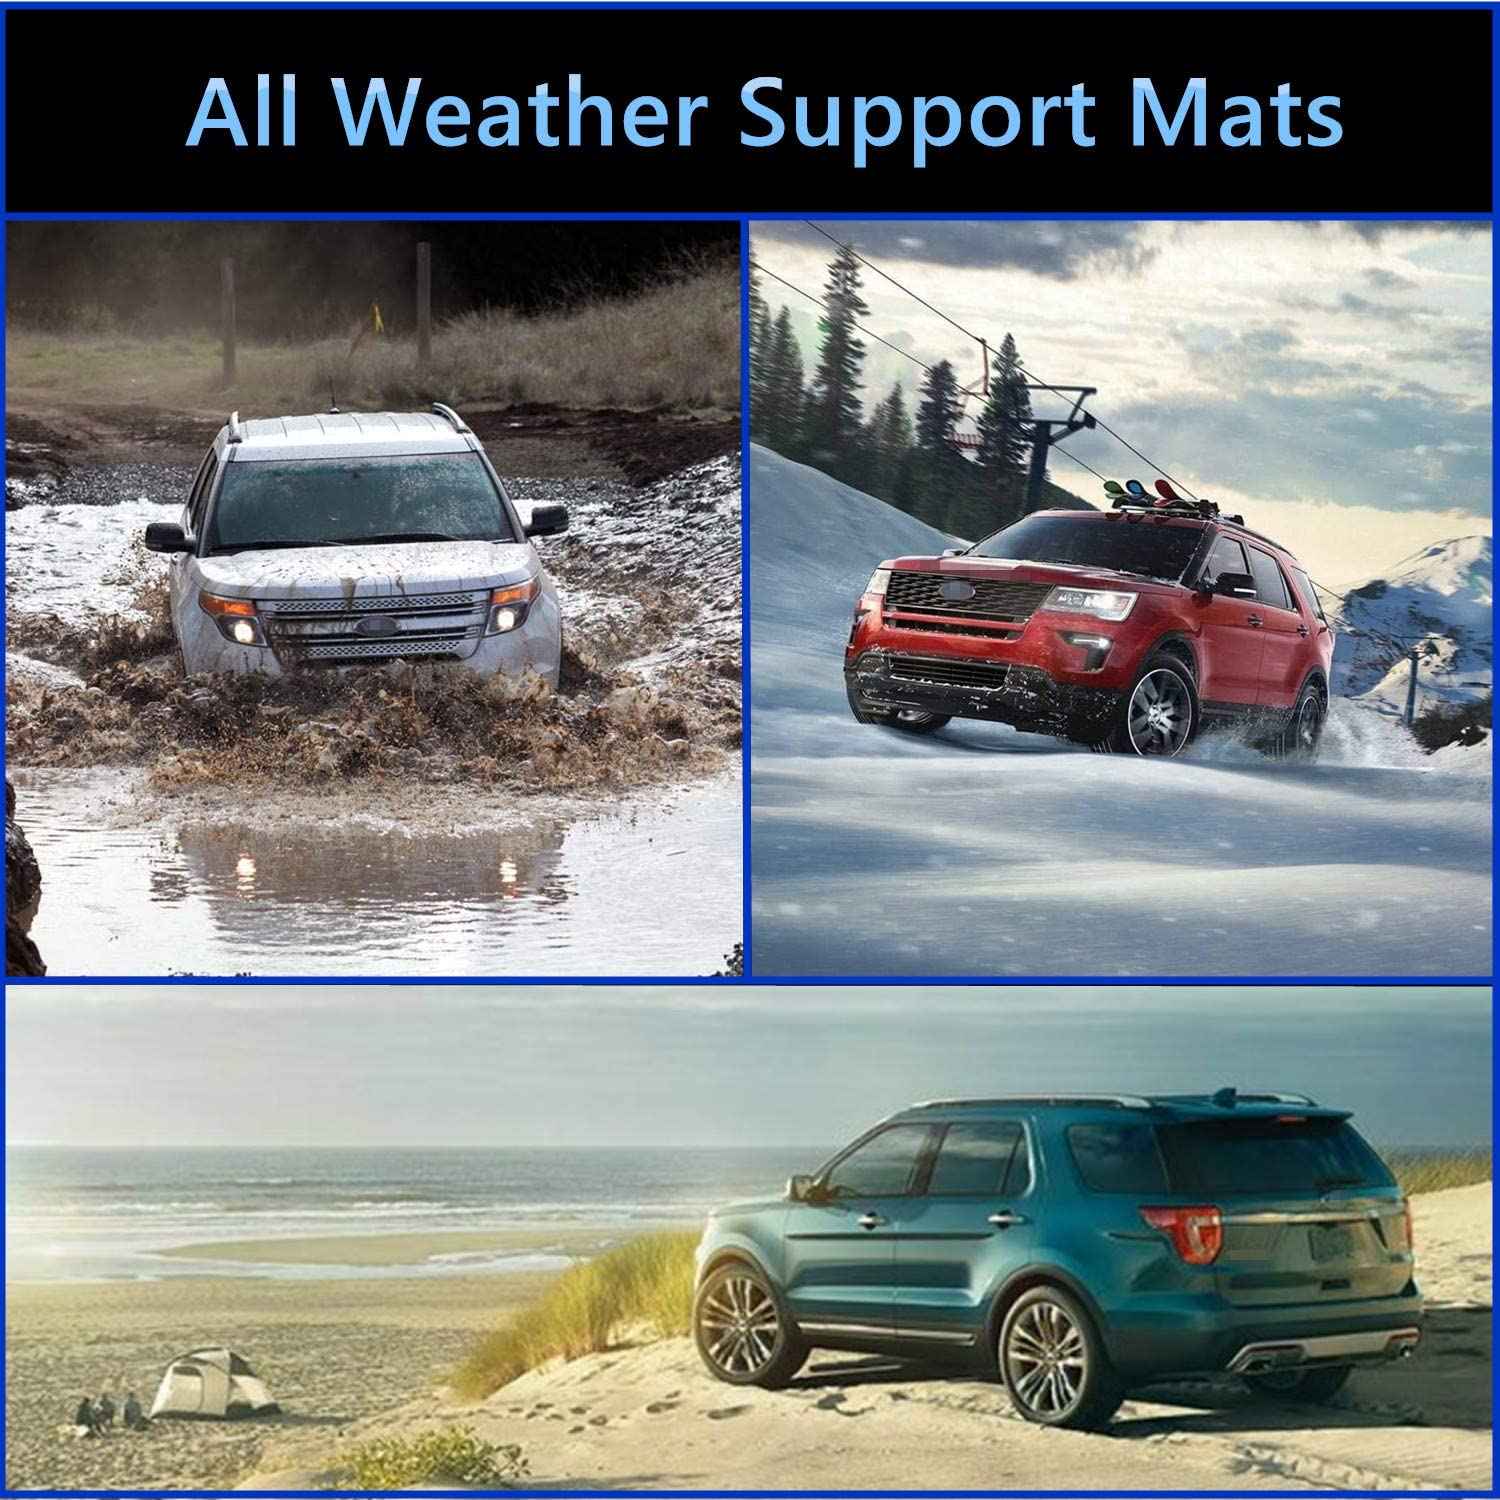 MotorFansClub Customed Floor Mats Fit for Compatible with Ford Explorer 2015 2016 Floor Liners 1st /& 2nd Row Carpet Cargo Liner All Weather Protection